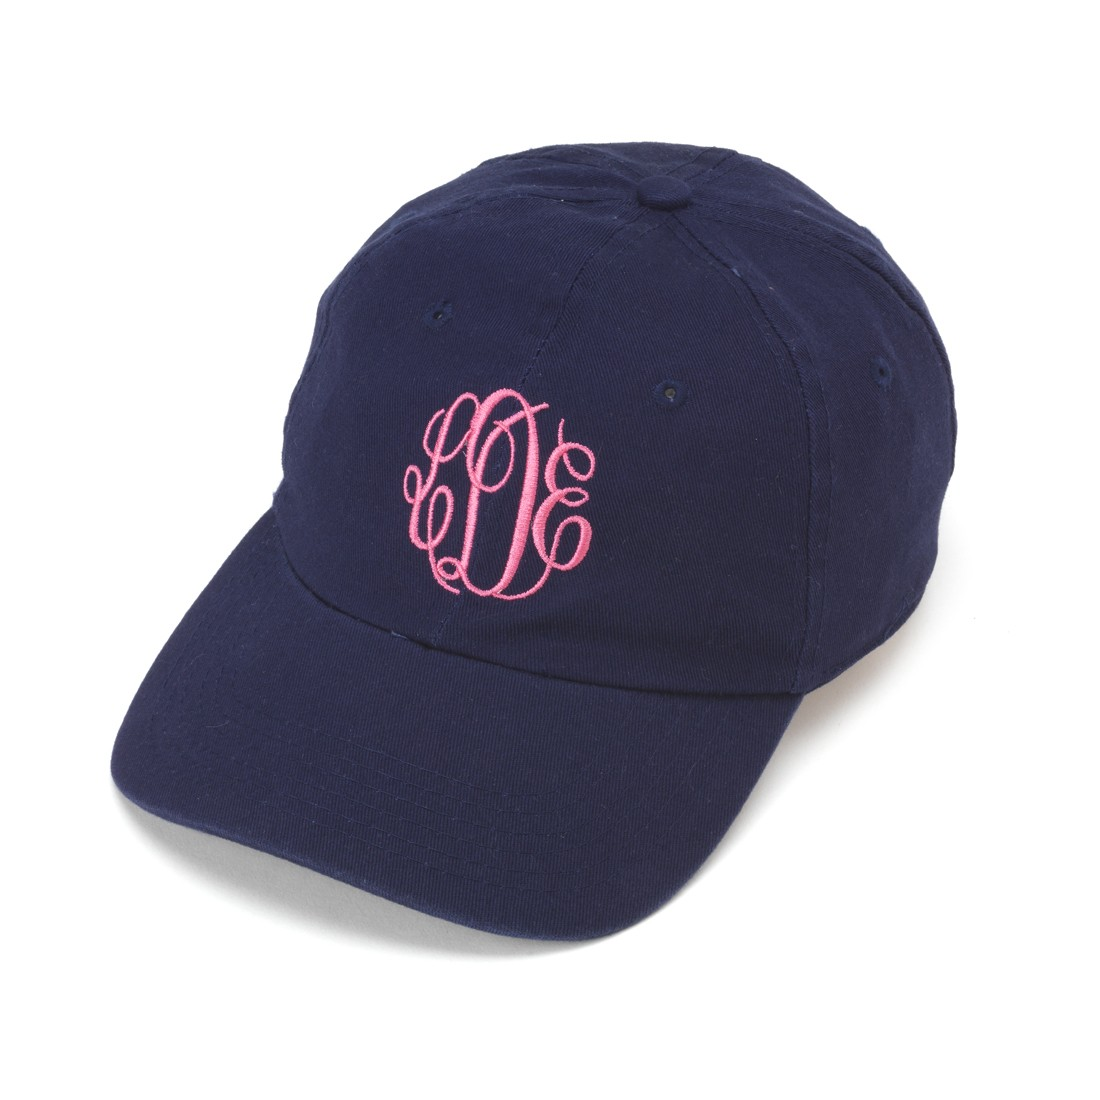 Navy Monogram Cap